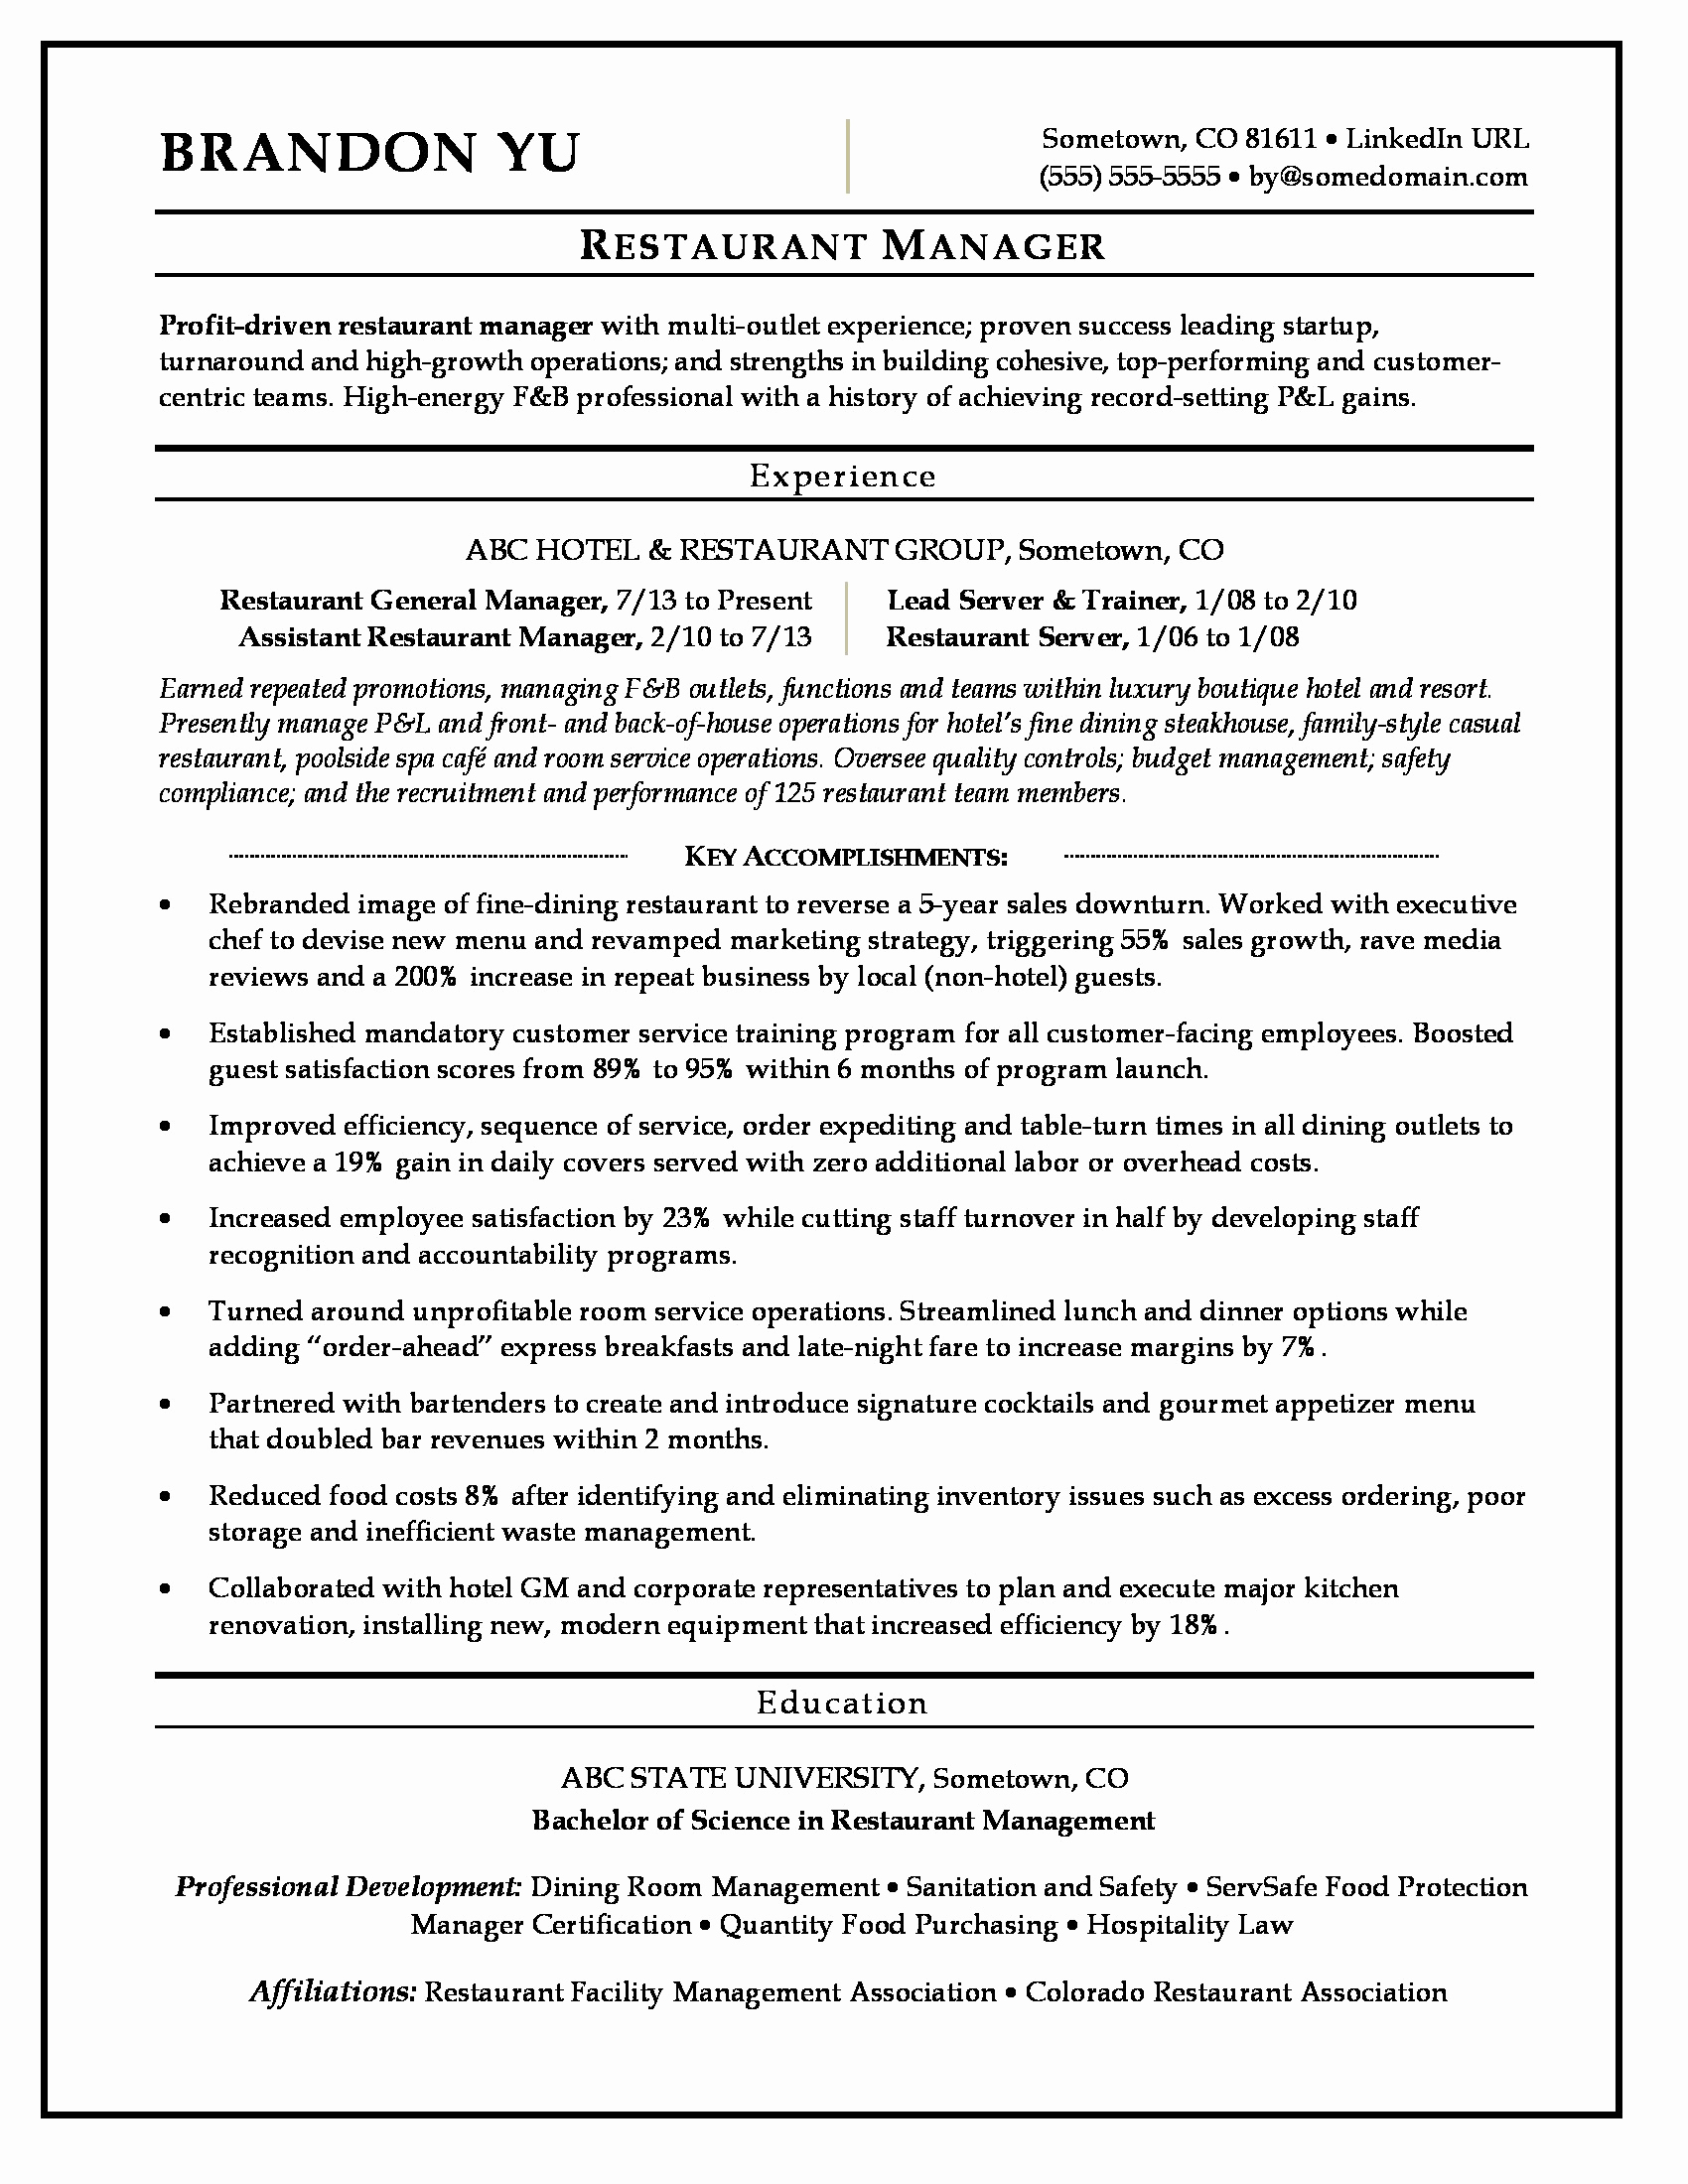 Restaurant Manager Resume Examples Elegant Restaurant Manager Resume Sample